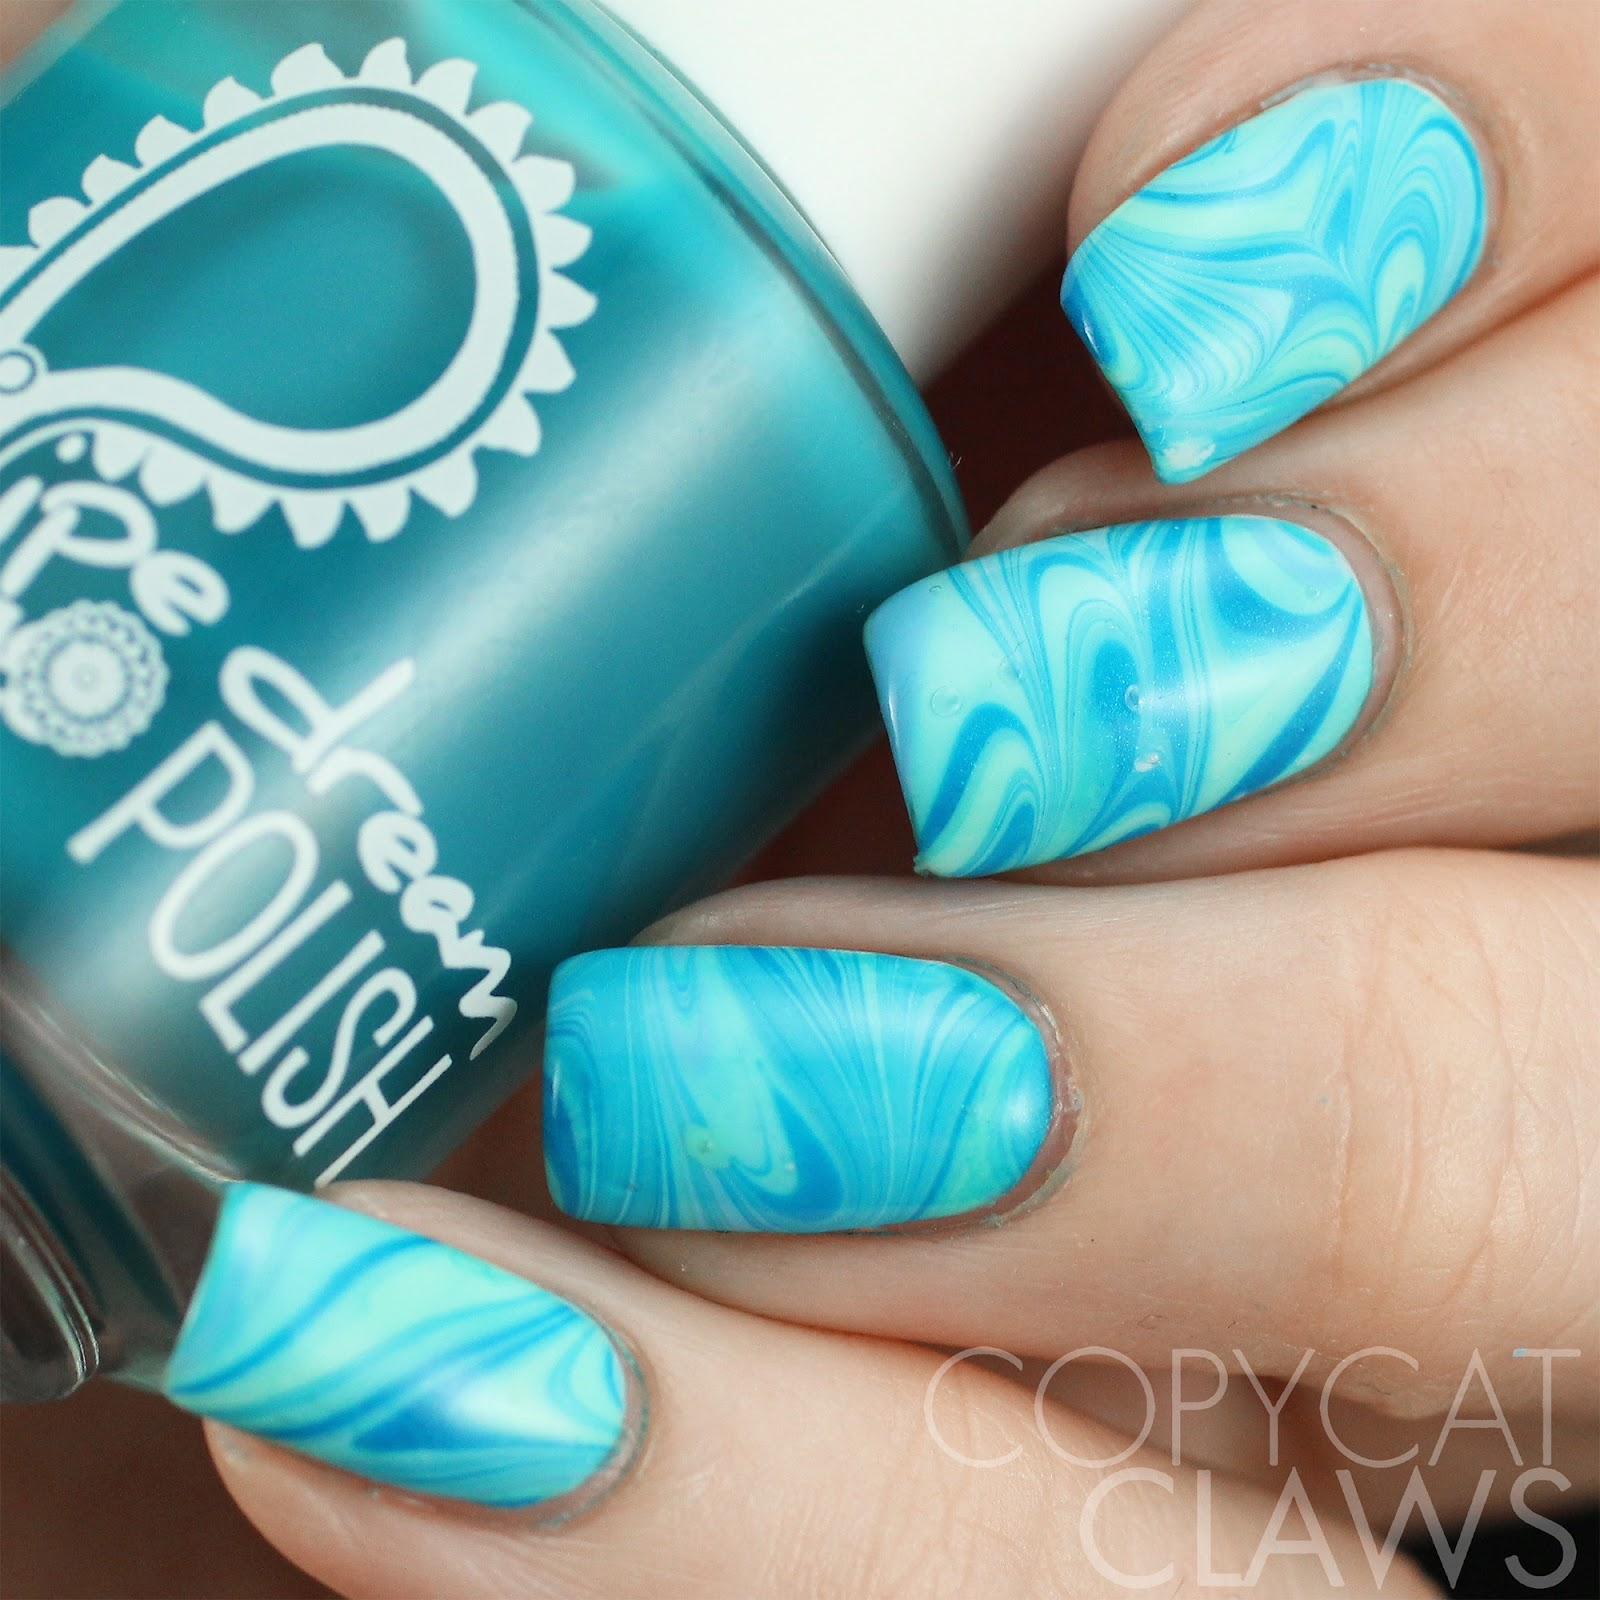 Copycat Claws: 26 Great Nail Art Ideas - Water